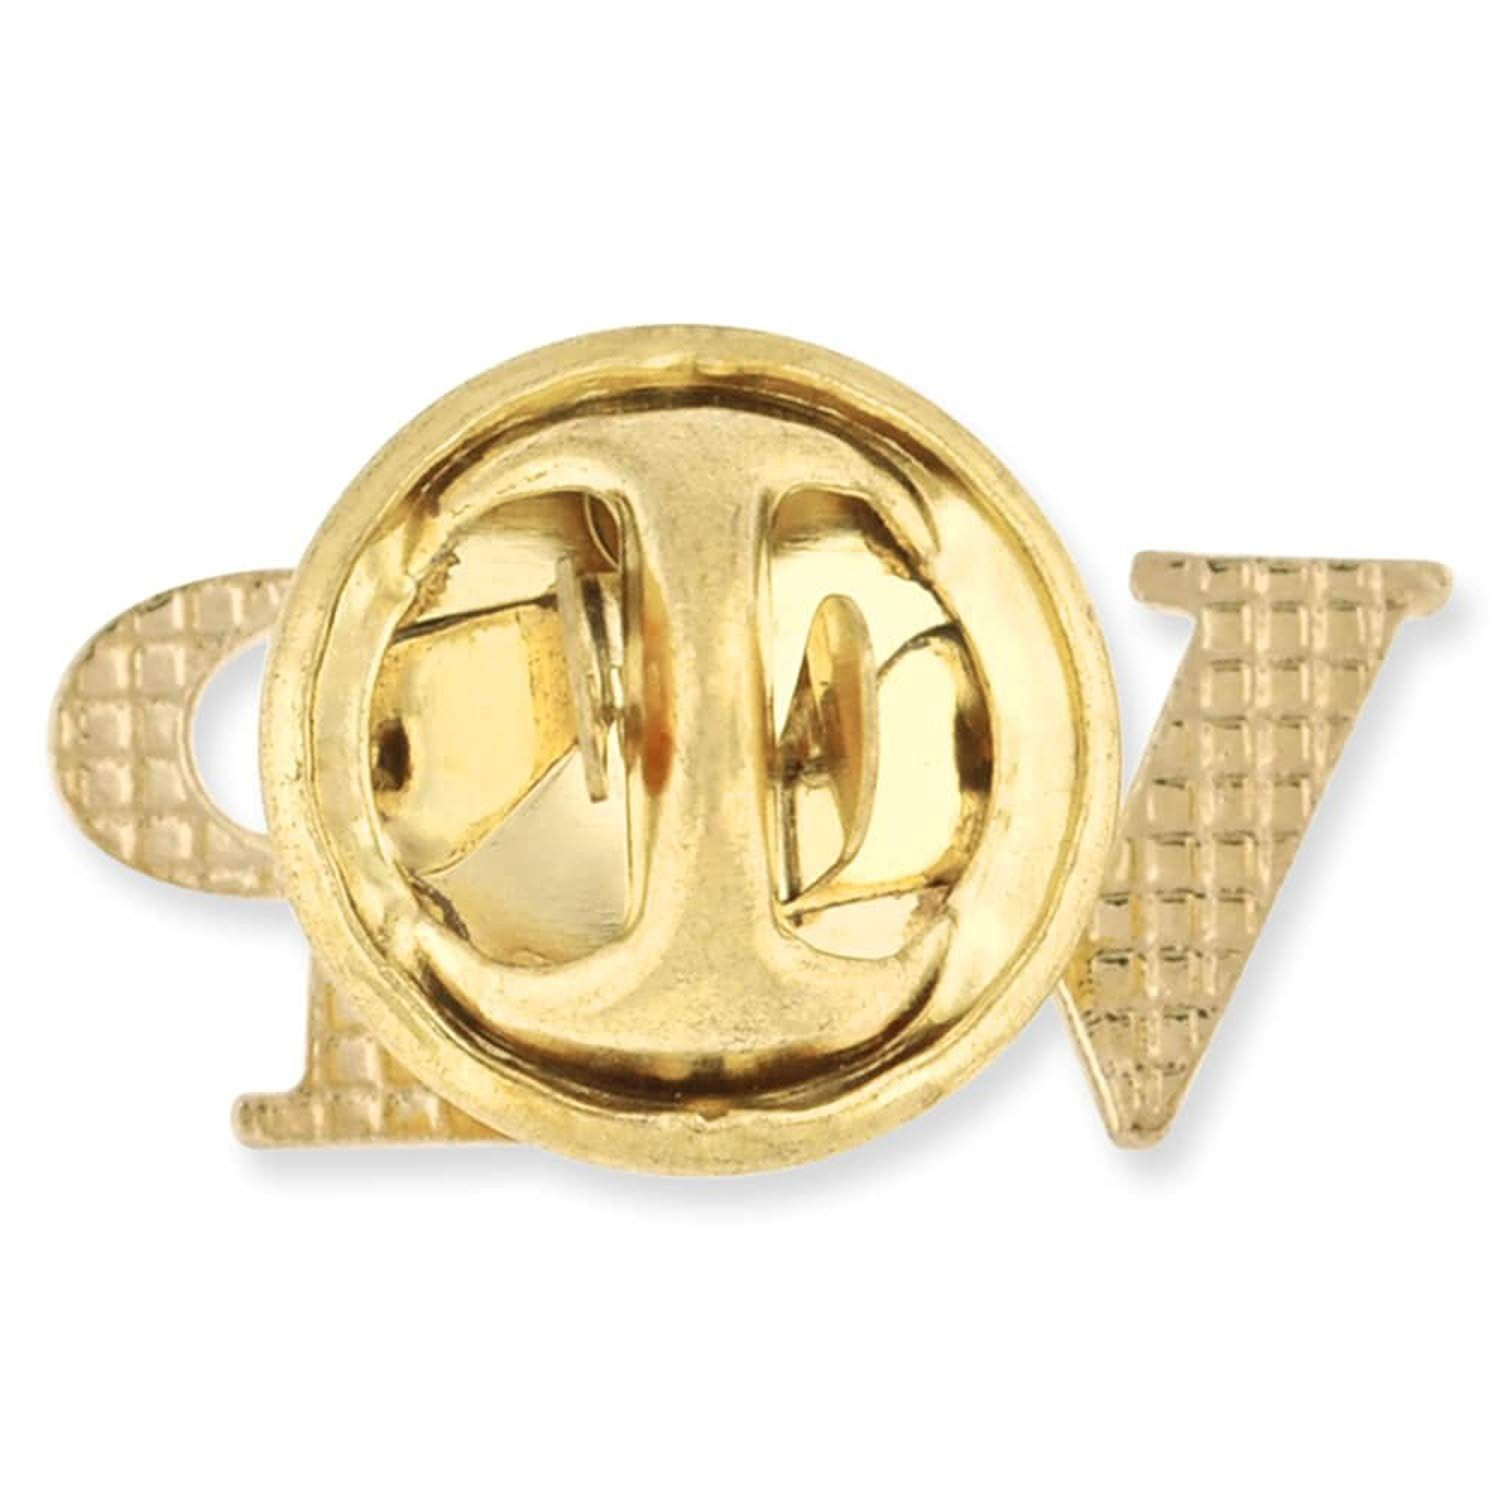 Pinmart S Gold Plated Vip Very Important Person Lapel Pin